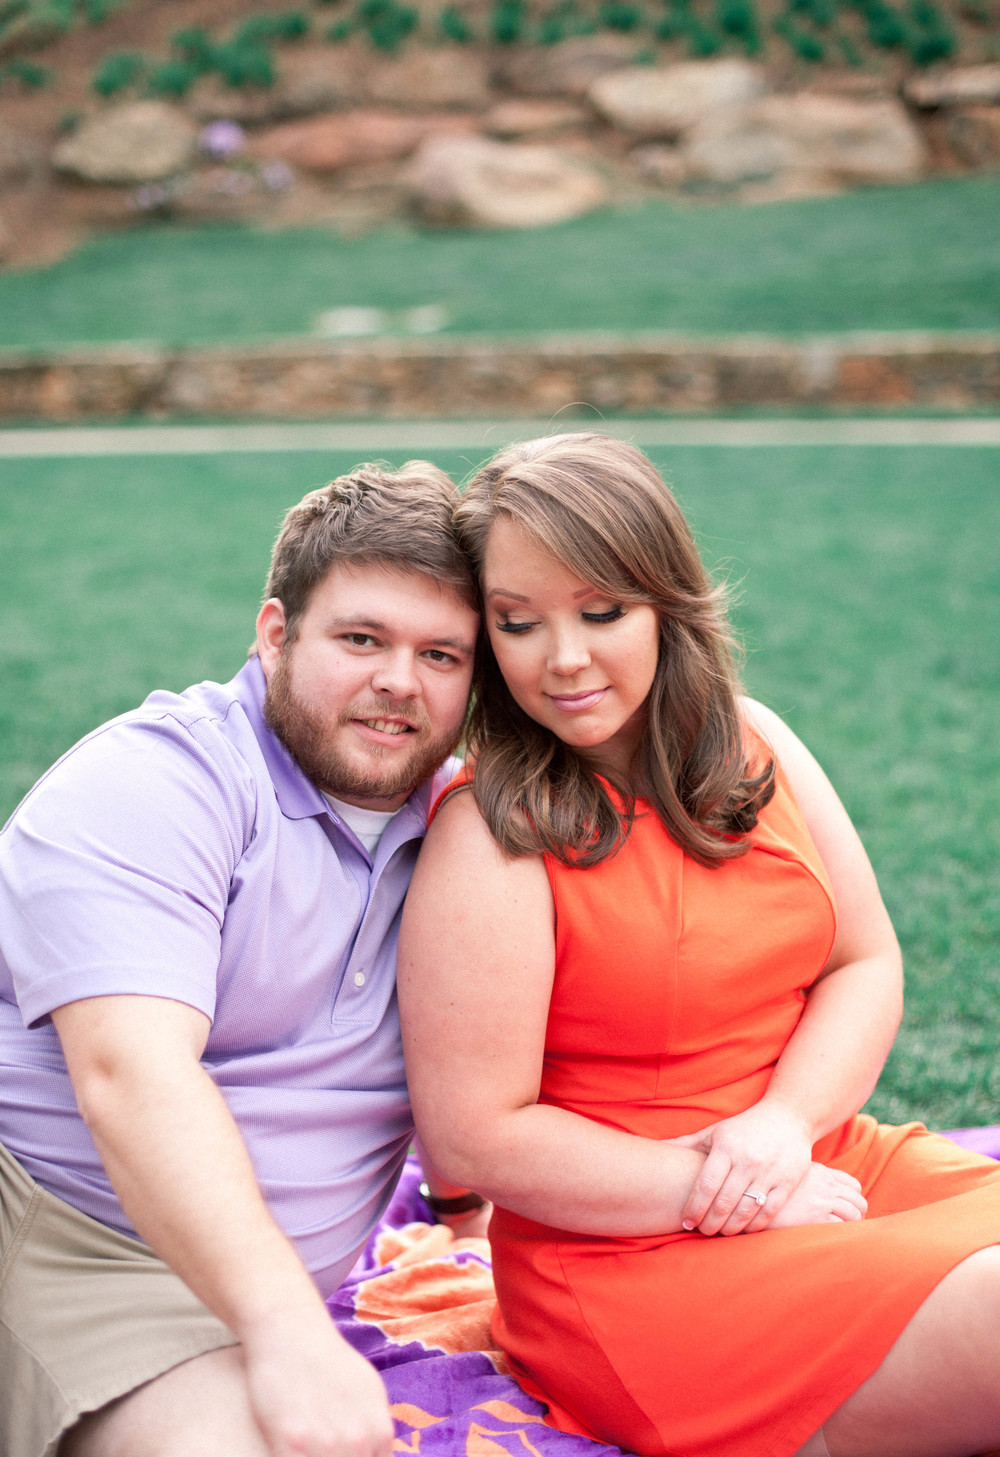 zach_gabbie_engagement_poured_out_photography-36.jpg